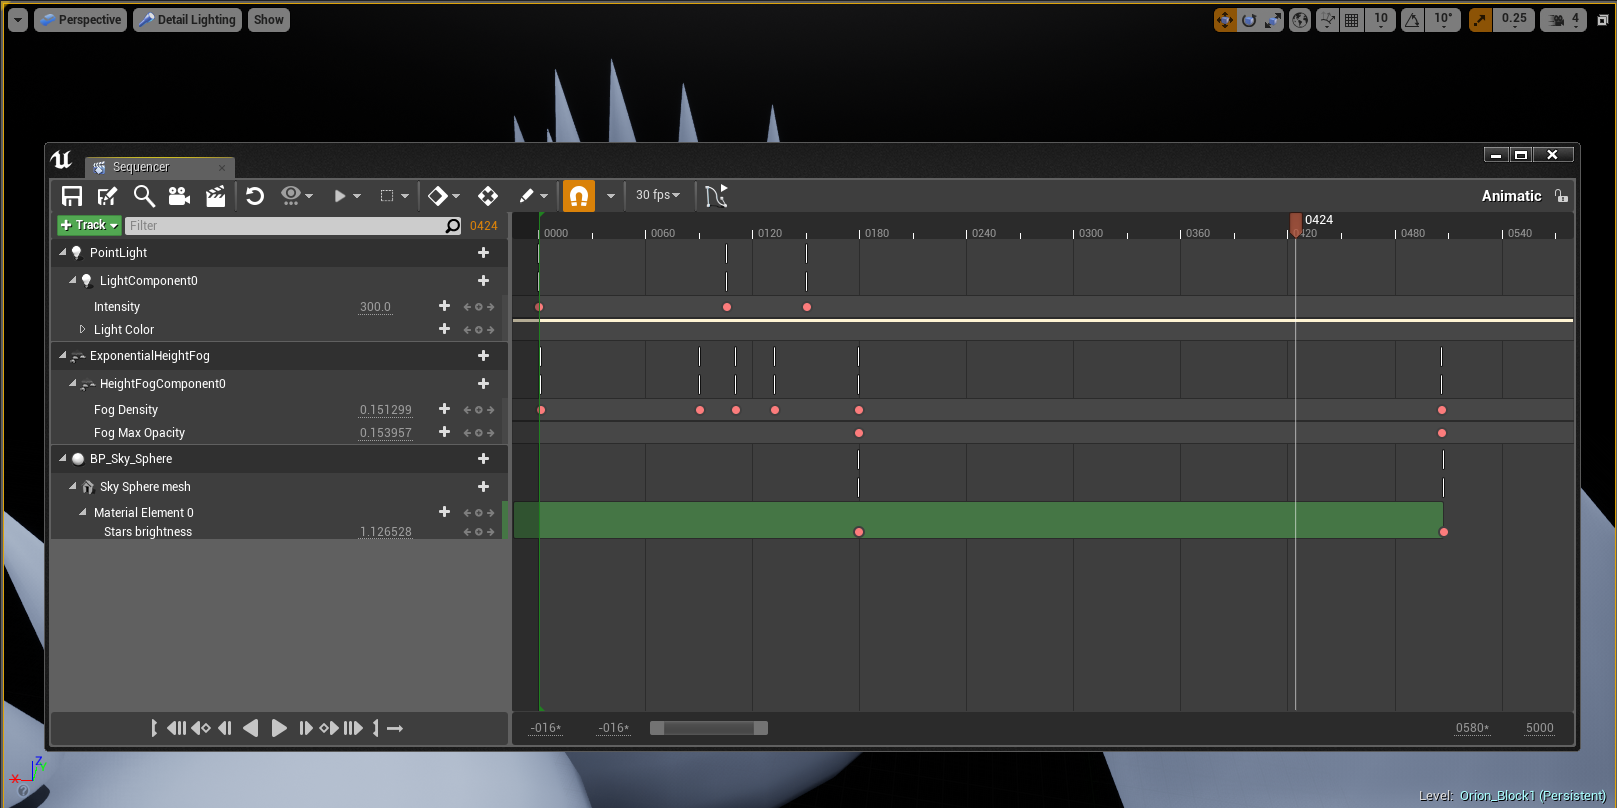 Current state of the sequencer, using to coordinate my animations.